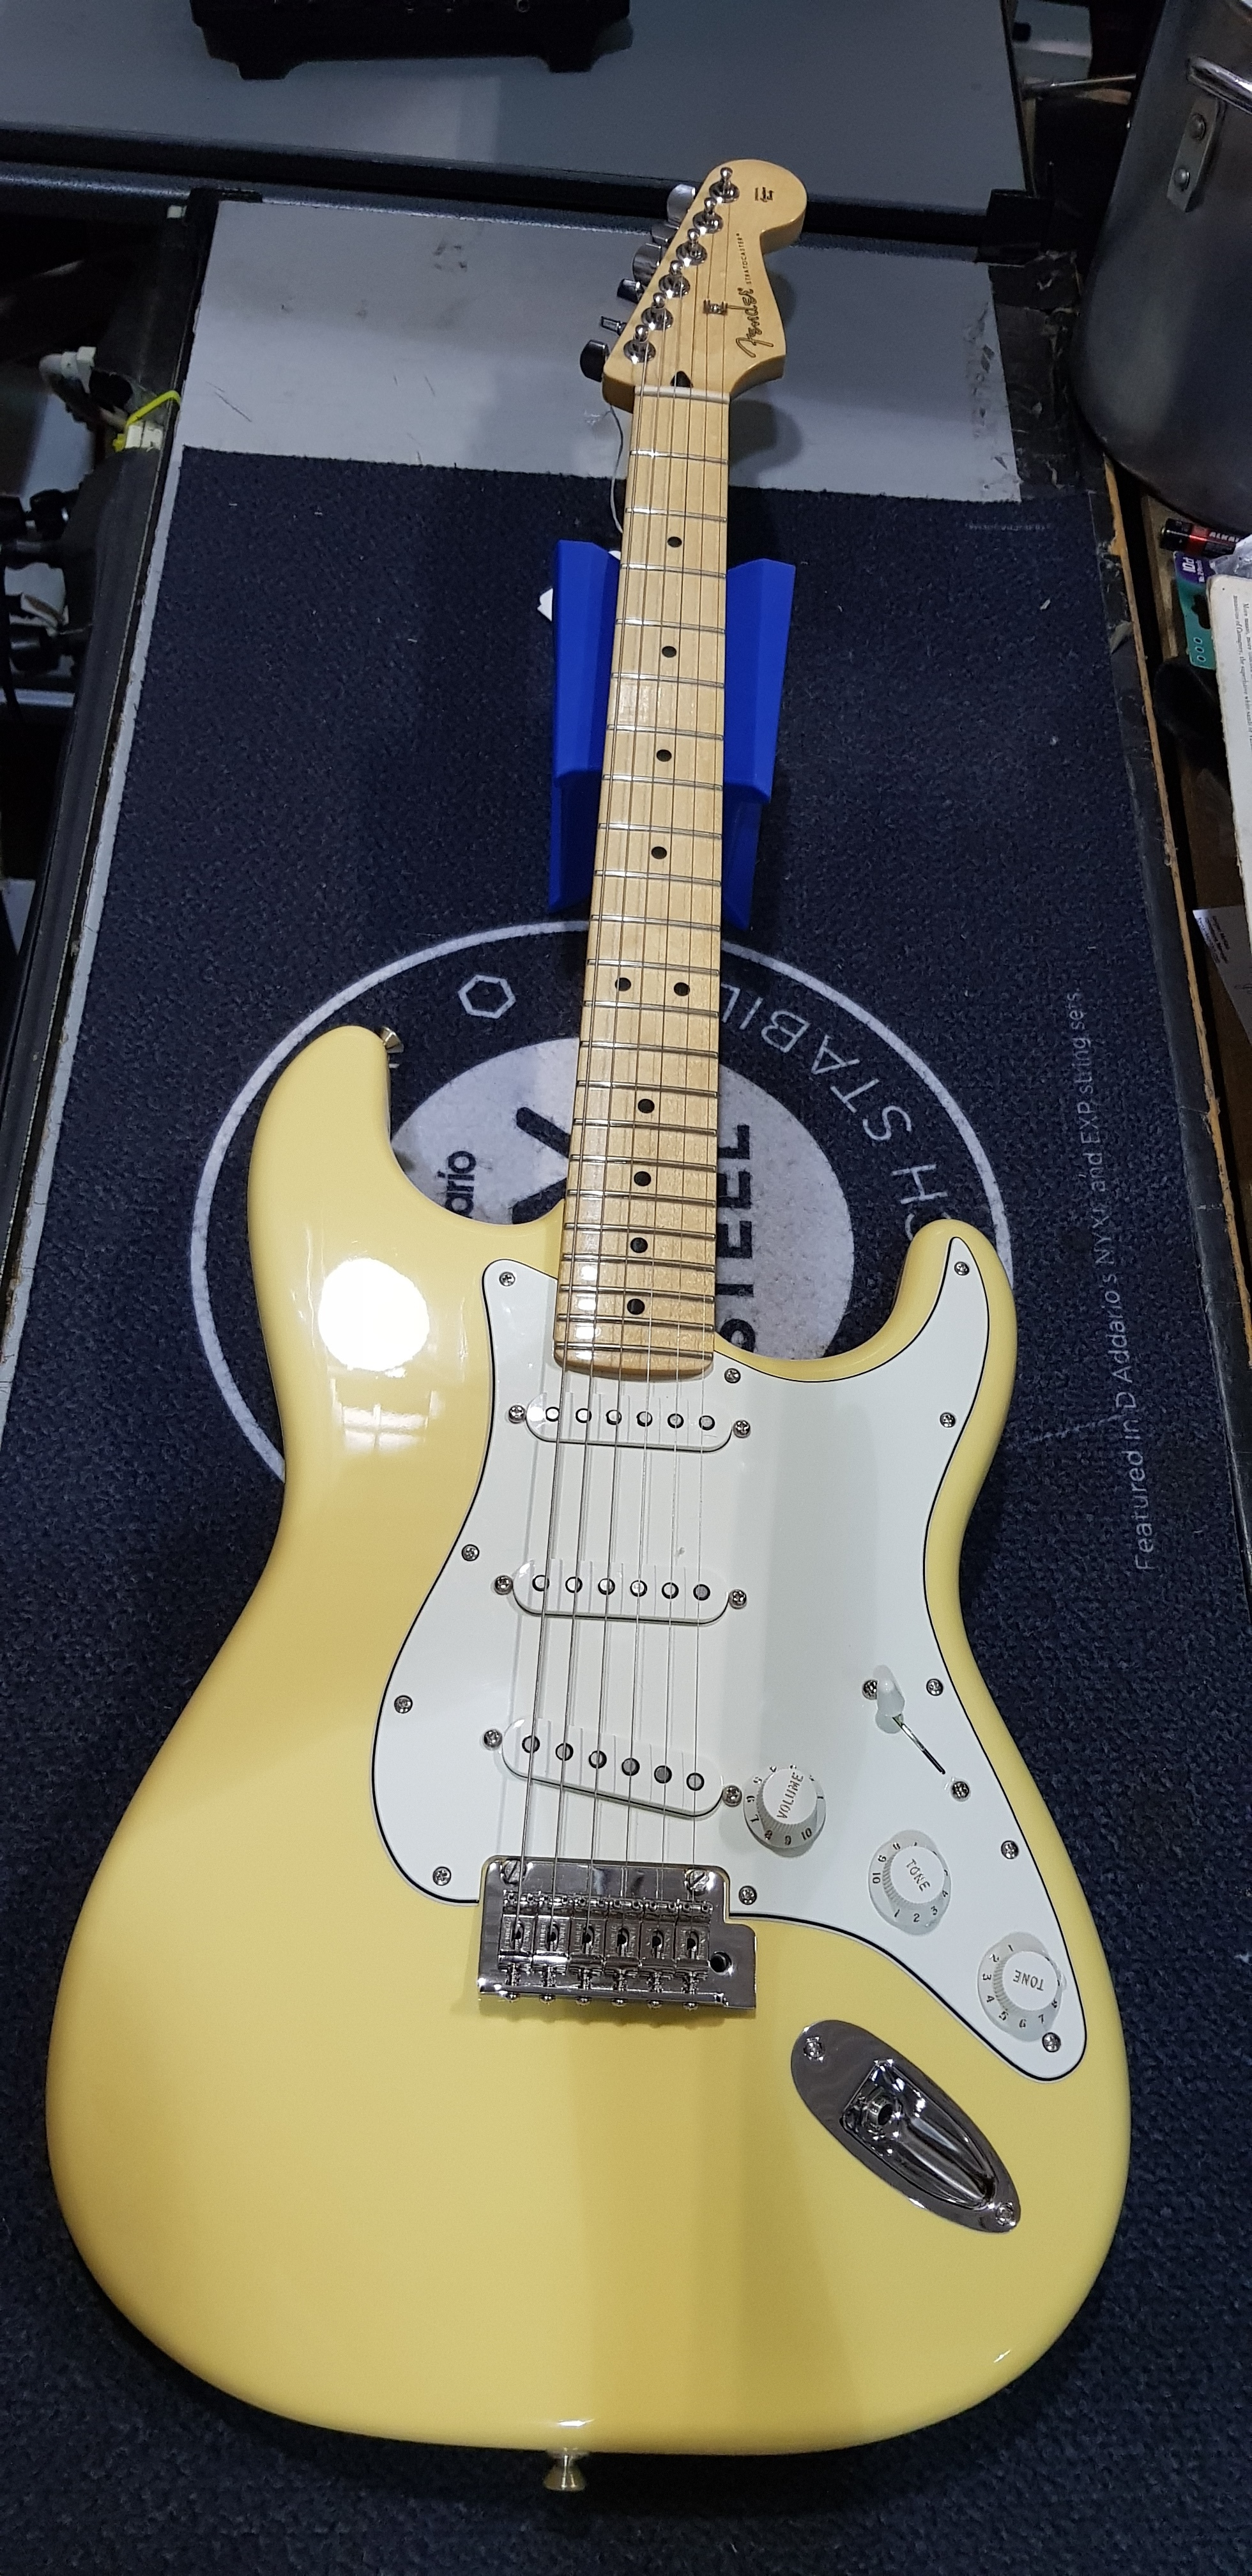 2018 FENDER PLAYER STRATOCASTER Electric Guitar w/ Gig-bag - Buttercream